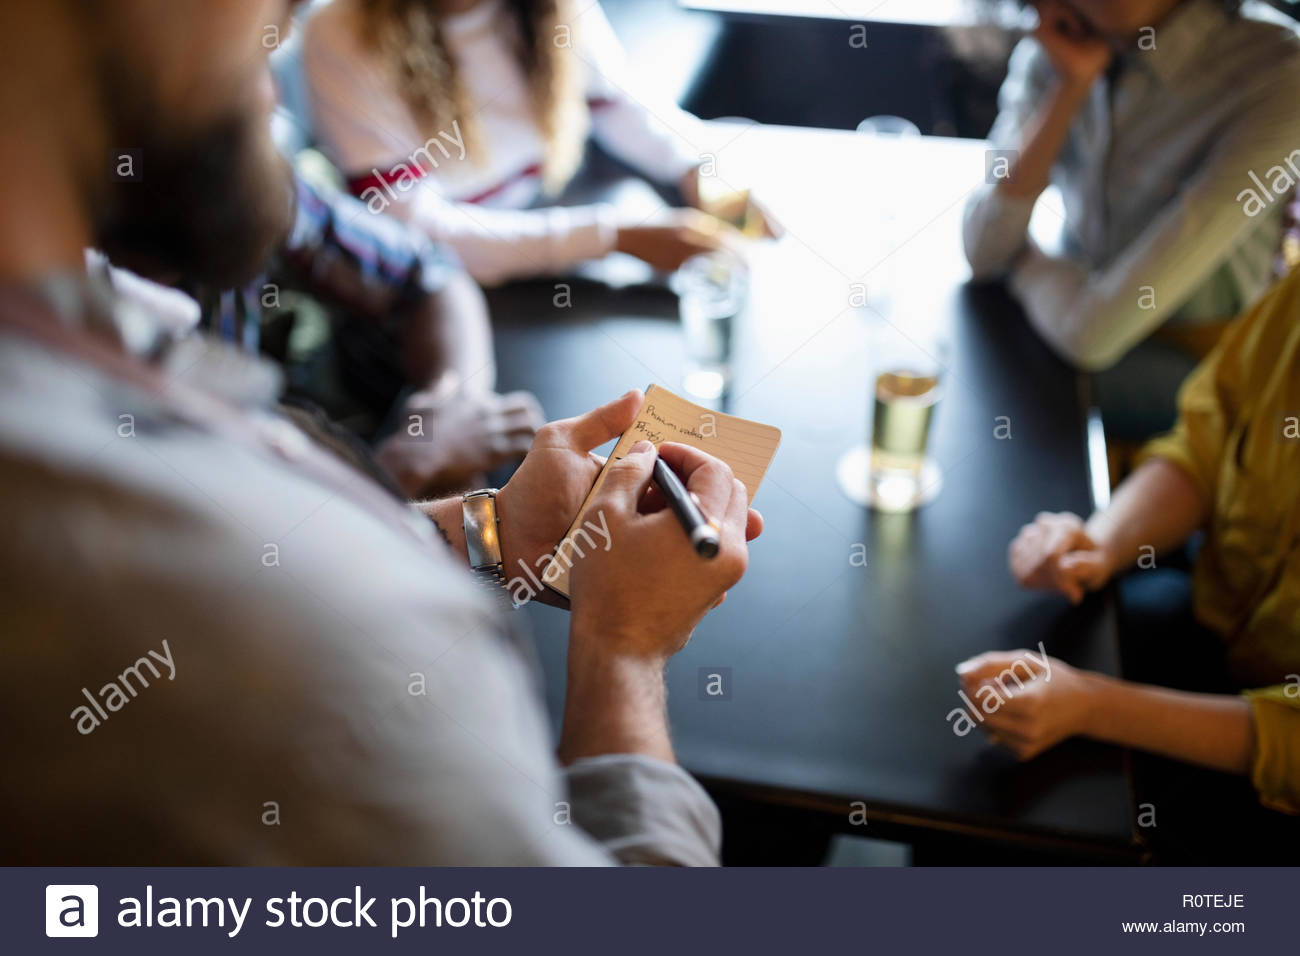 Waiter taking order in bar Photo Stock